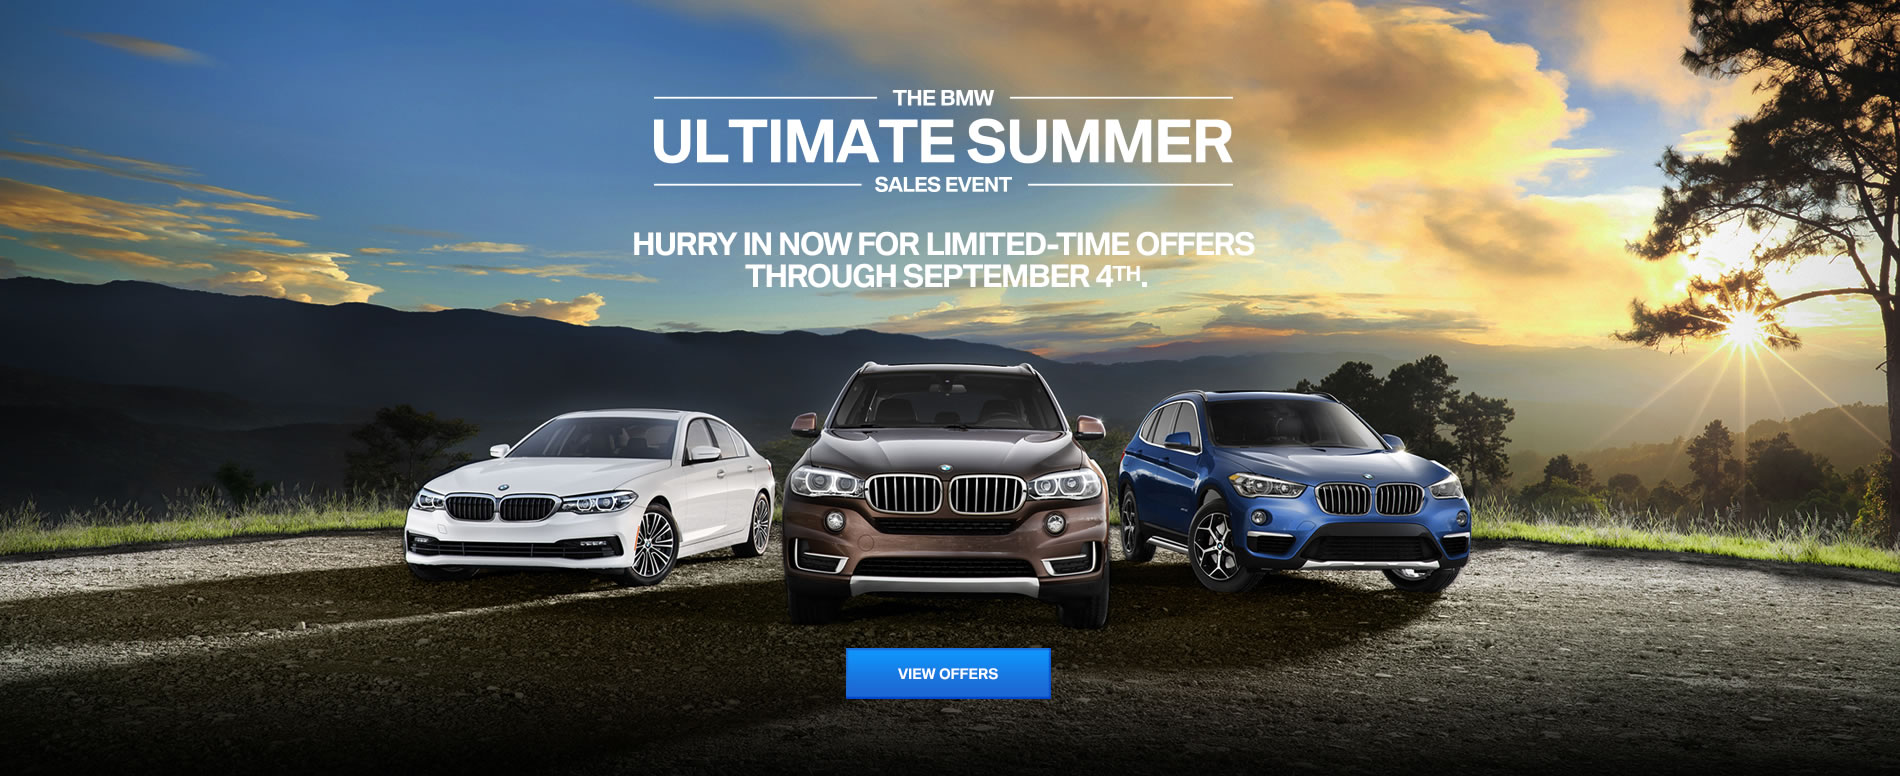 The BMW Ultimate Summer Sales Event